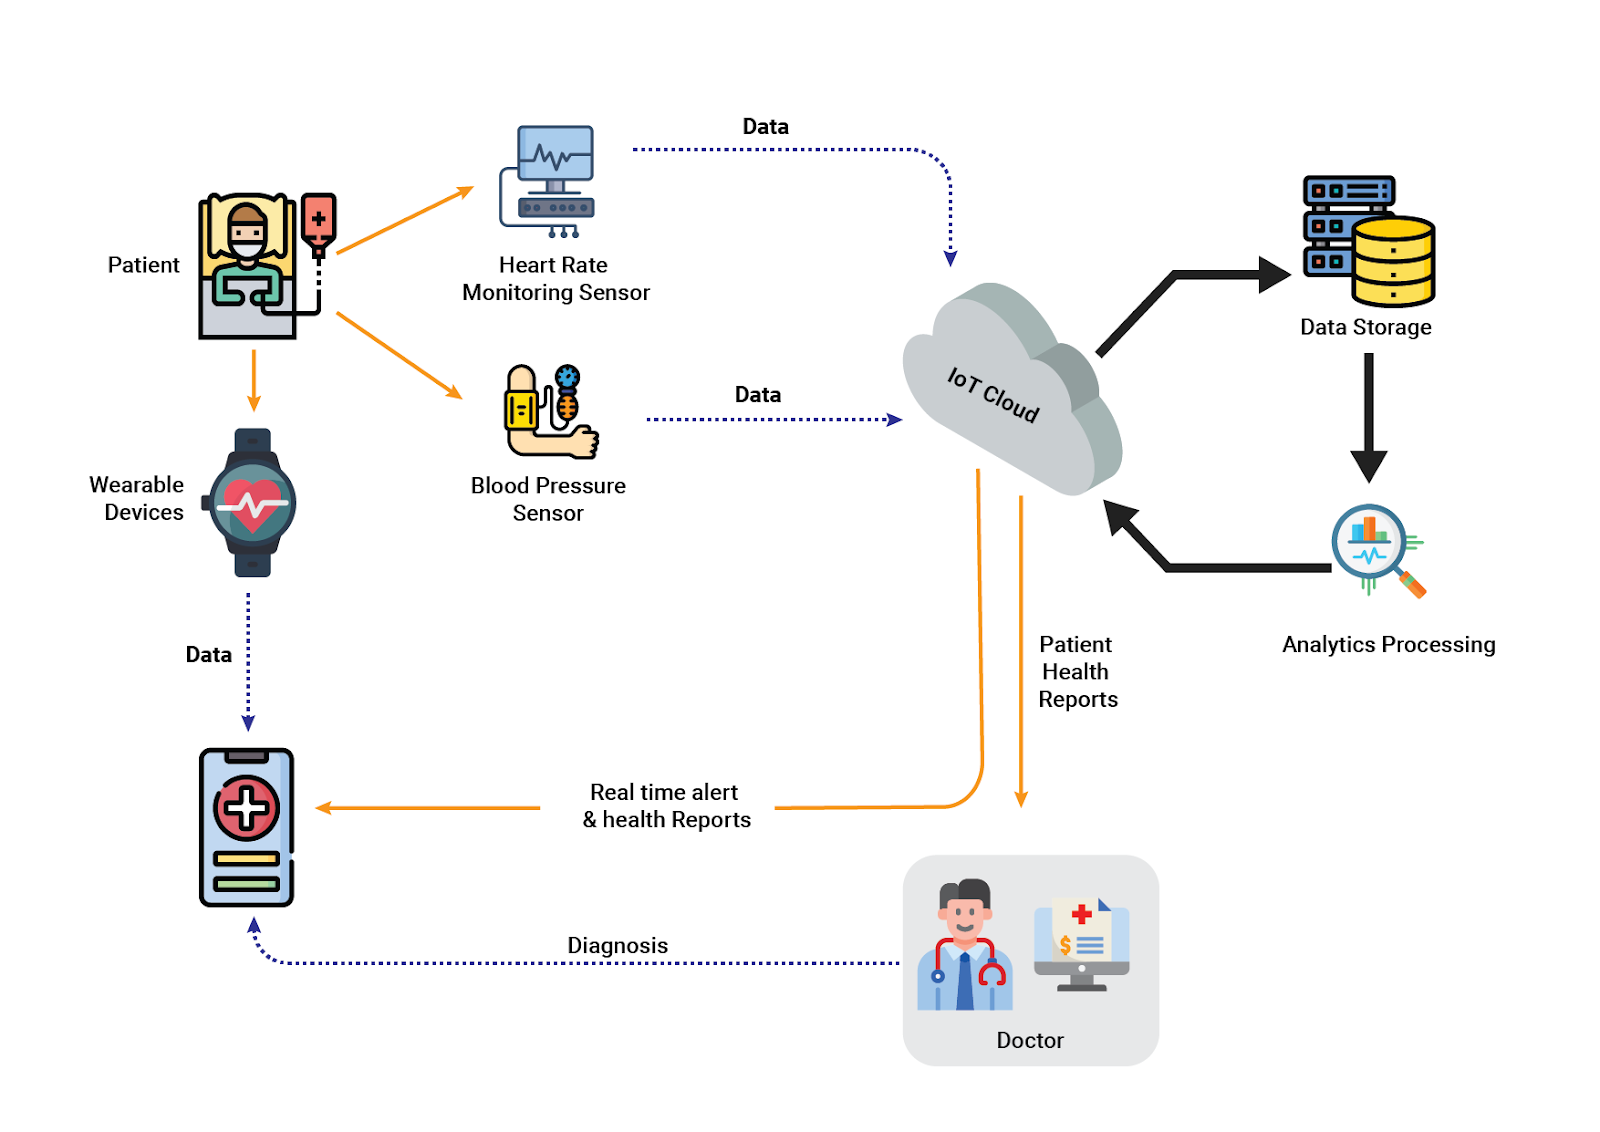 C:\Users\cheenu\Downloads\iot in healthcare-01.png